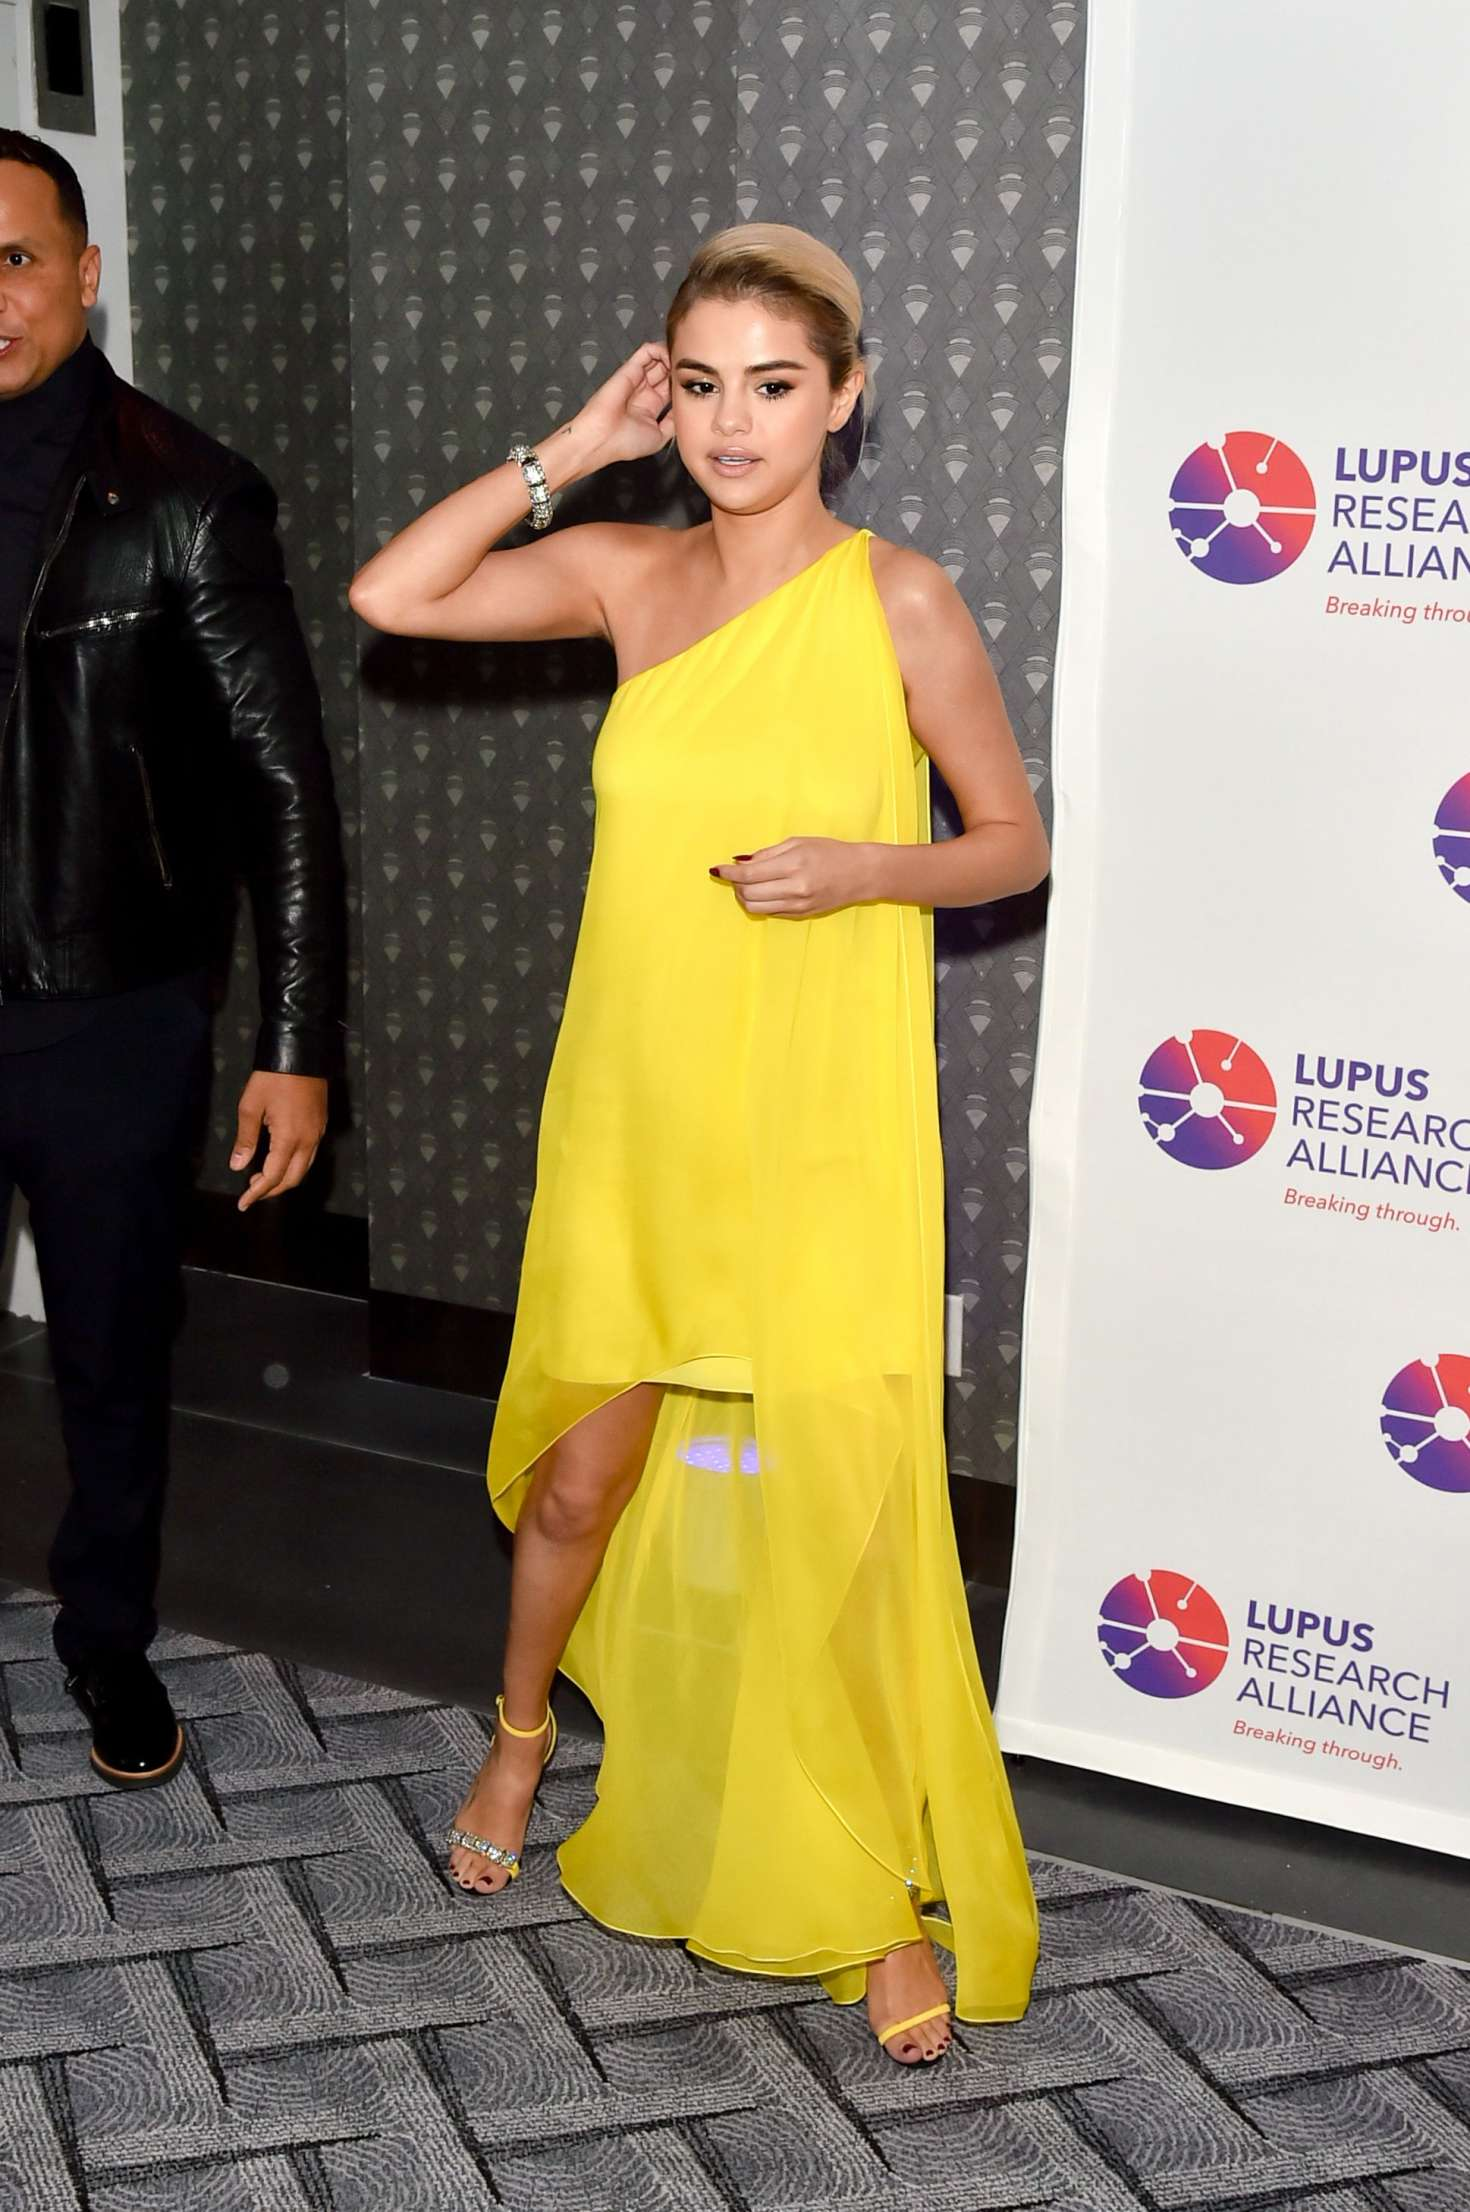 Selena Gomez 2017 : Selena Gomez: Lupus Research Alliance Breaking Through Lupus Gala -04